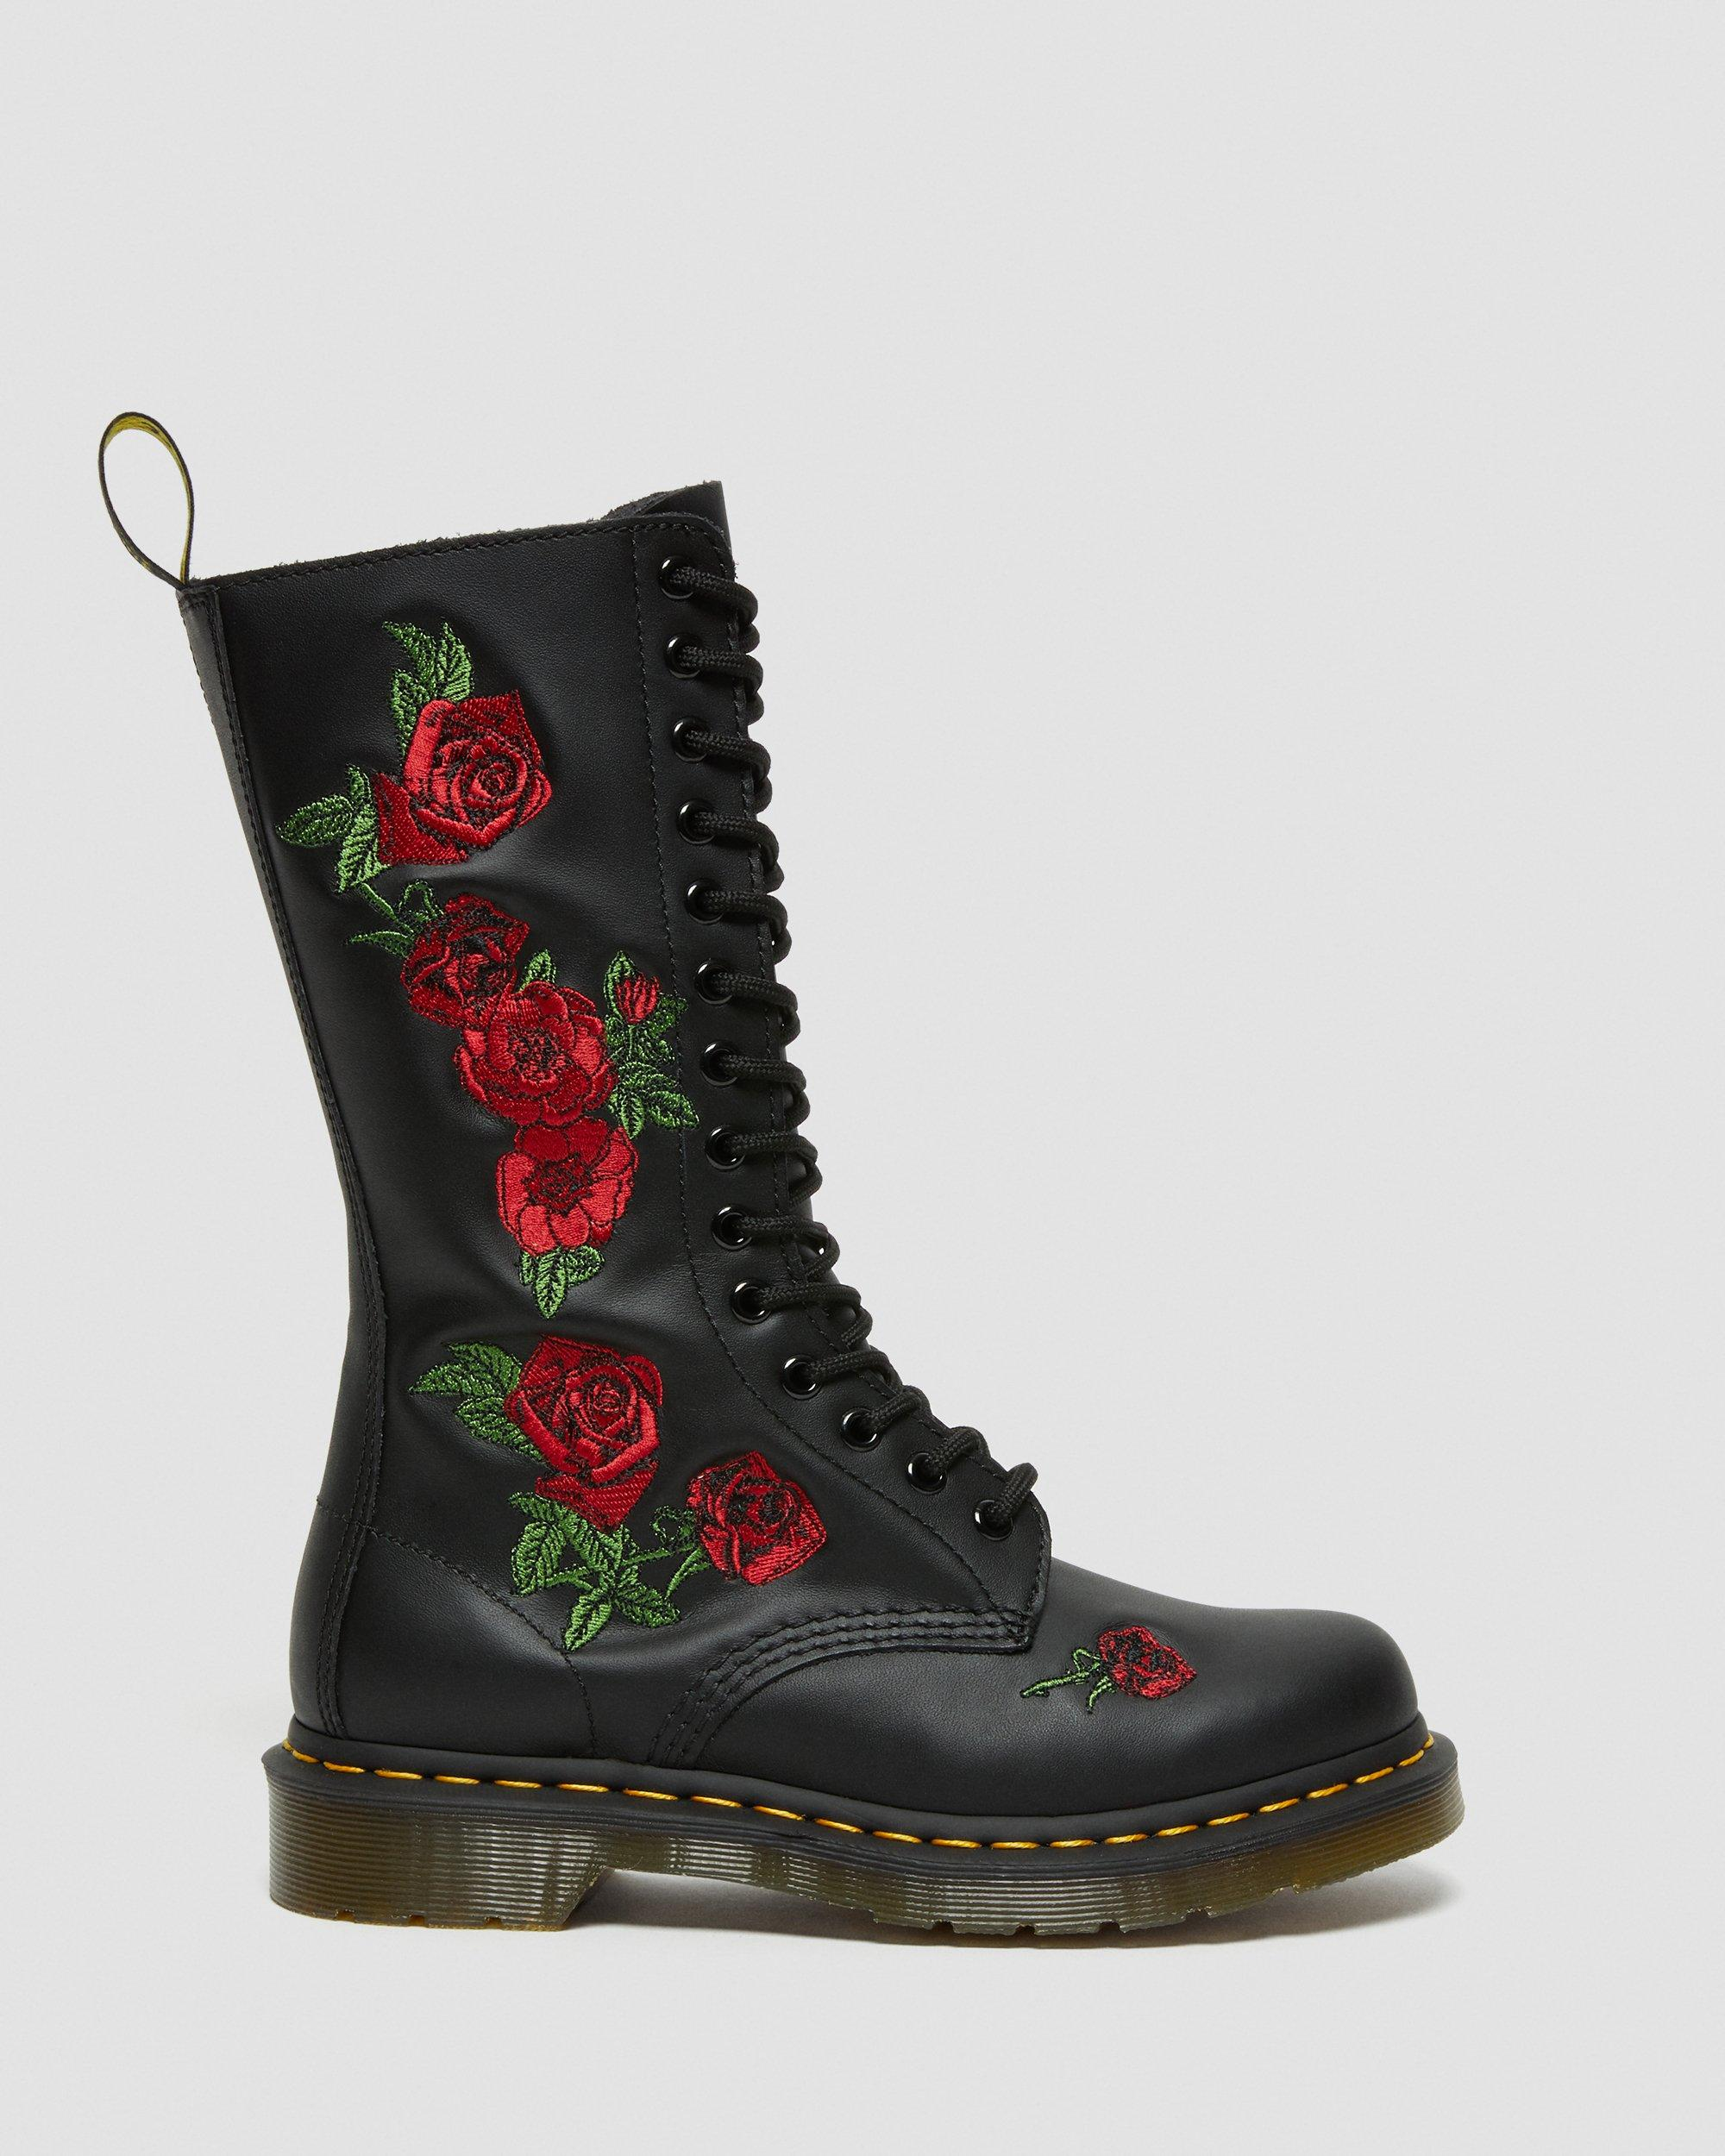 Dr. Martens VONDA Embroidery BLACK, Damen Combat Boots, Schwarz (Black), 36 EU (3 Damen UK)